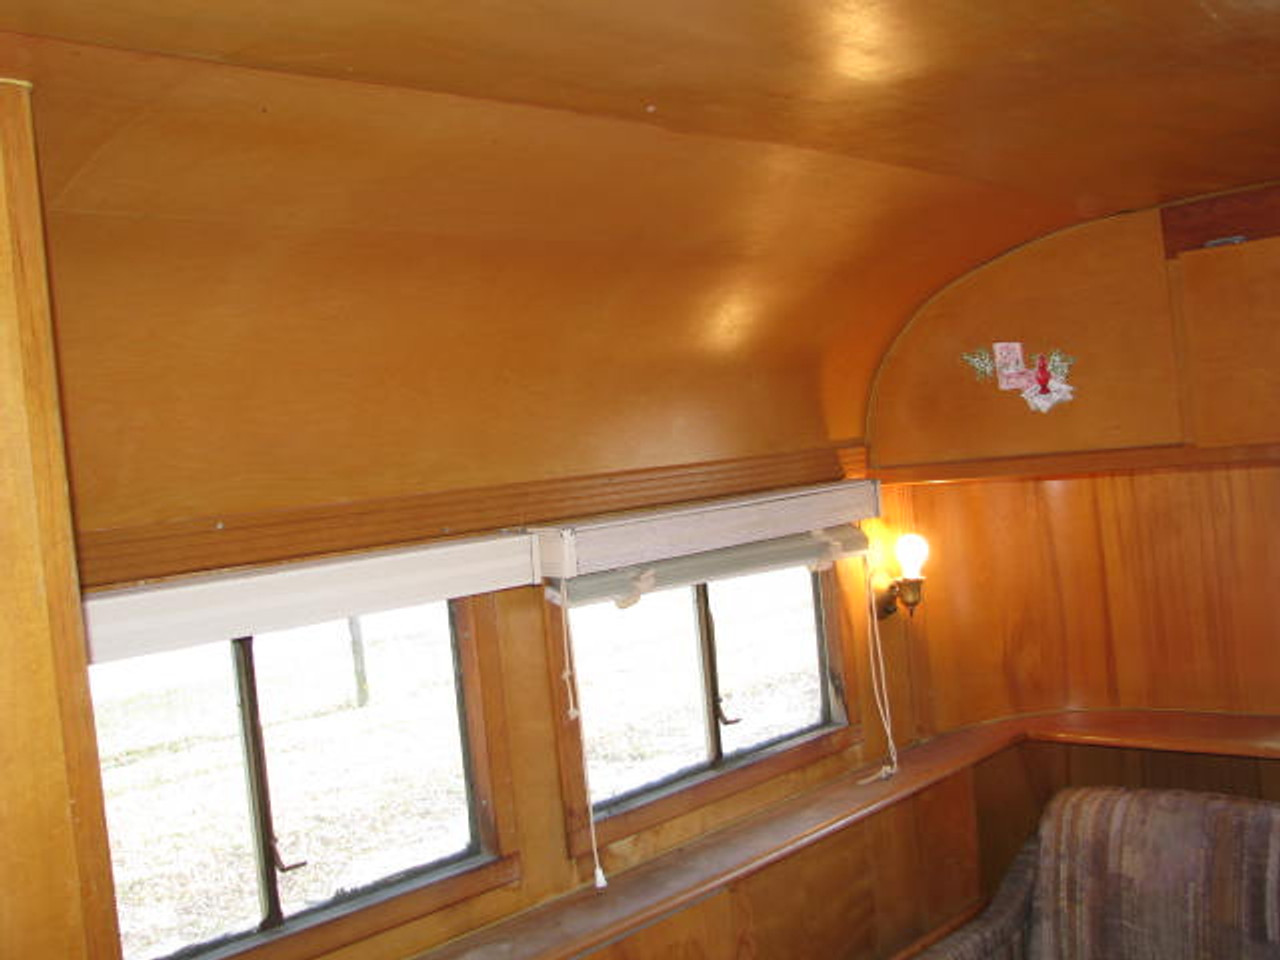 1948 Westcraft 24 Ft. Westwood - Coronado #C6981  (SOLD D.P.)